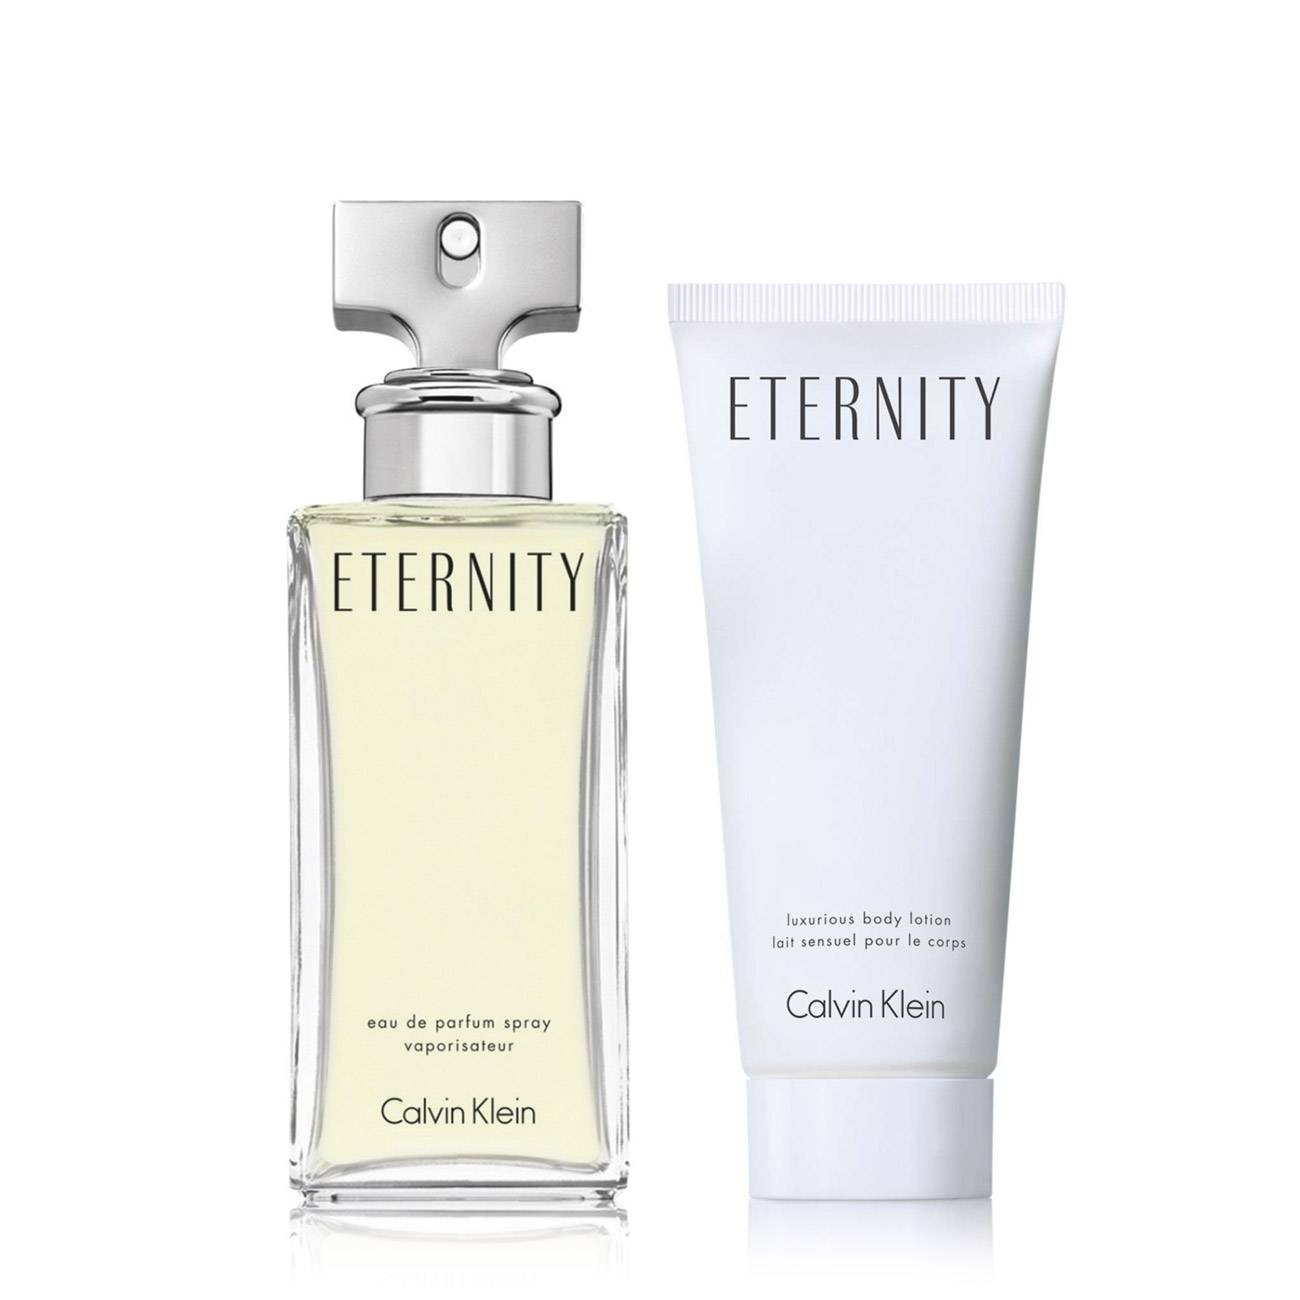 ETERNITY FOR WOMEN SET 200ml